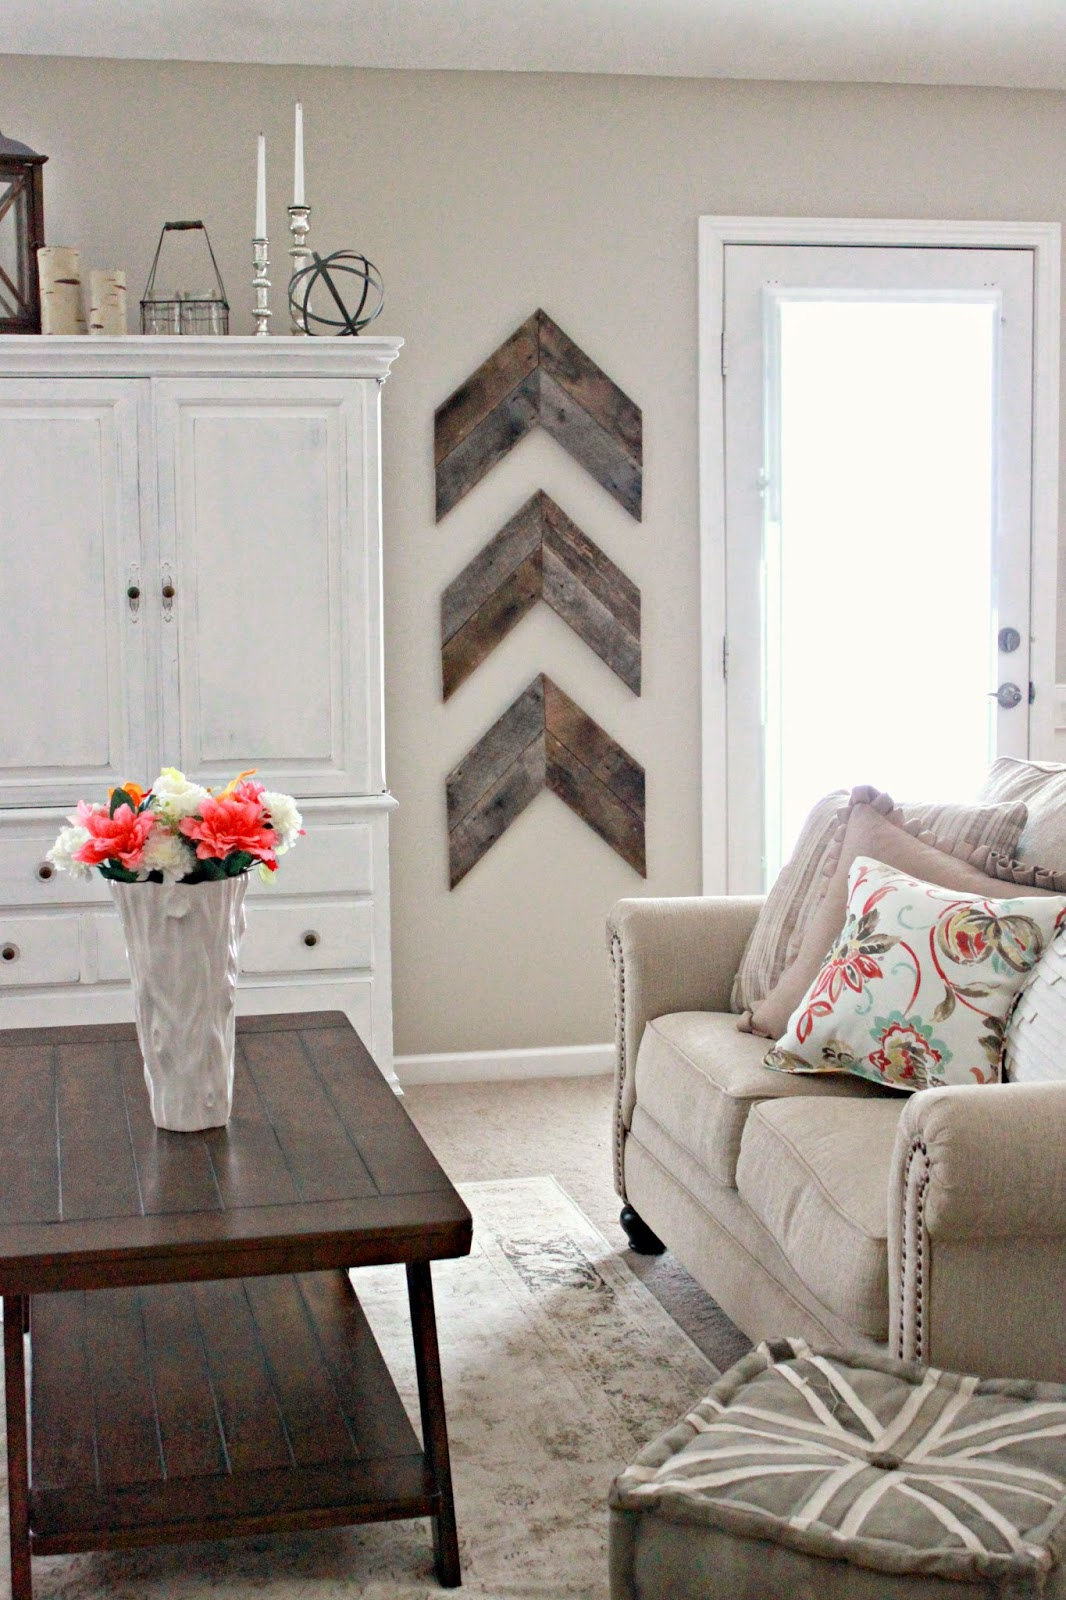 15 striking ways to decorate with arrows for Wall art sets for living room